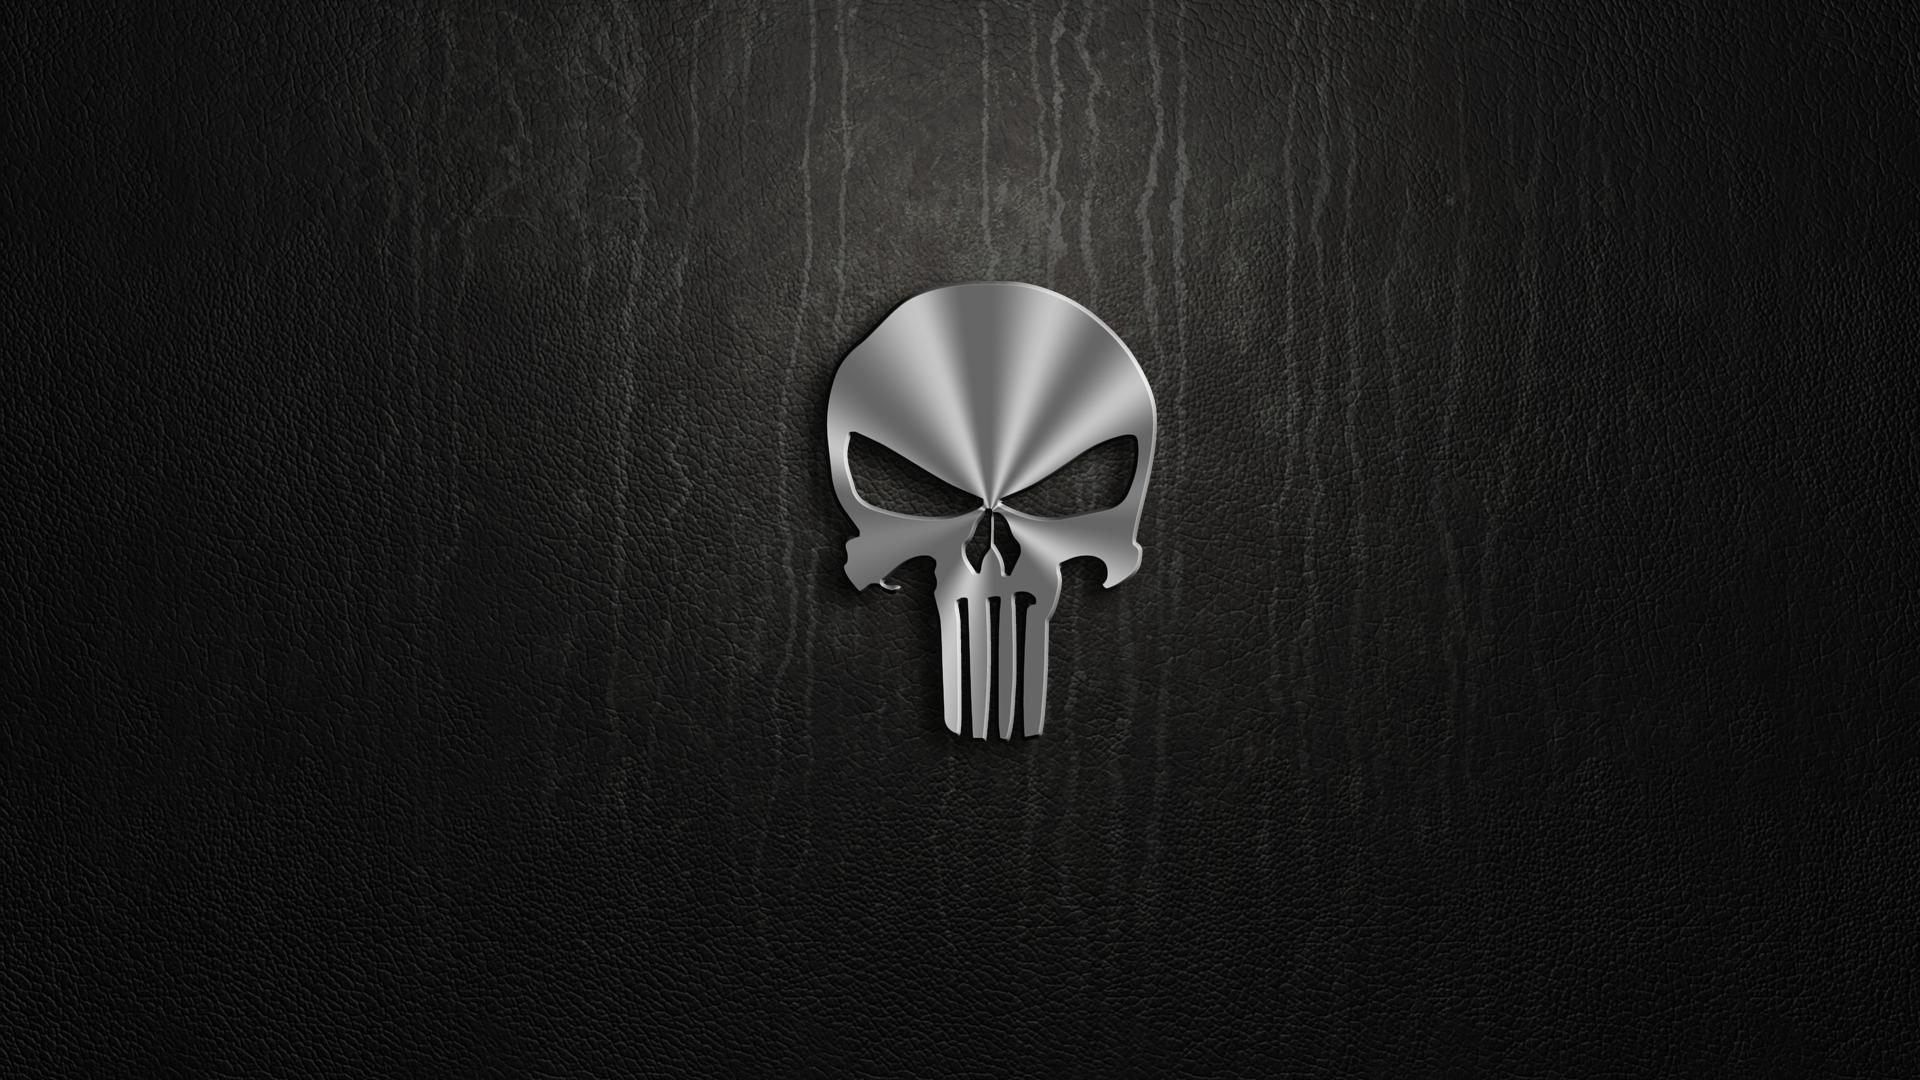 punisher logo wallpapers - photo #9